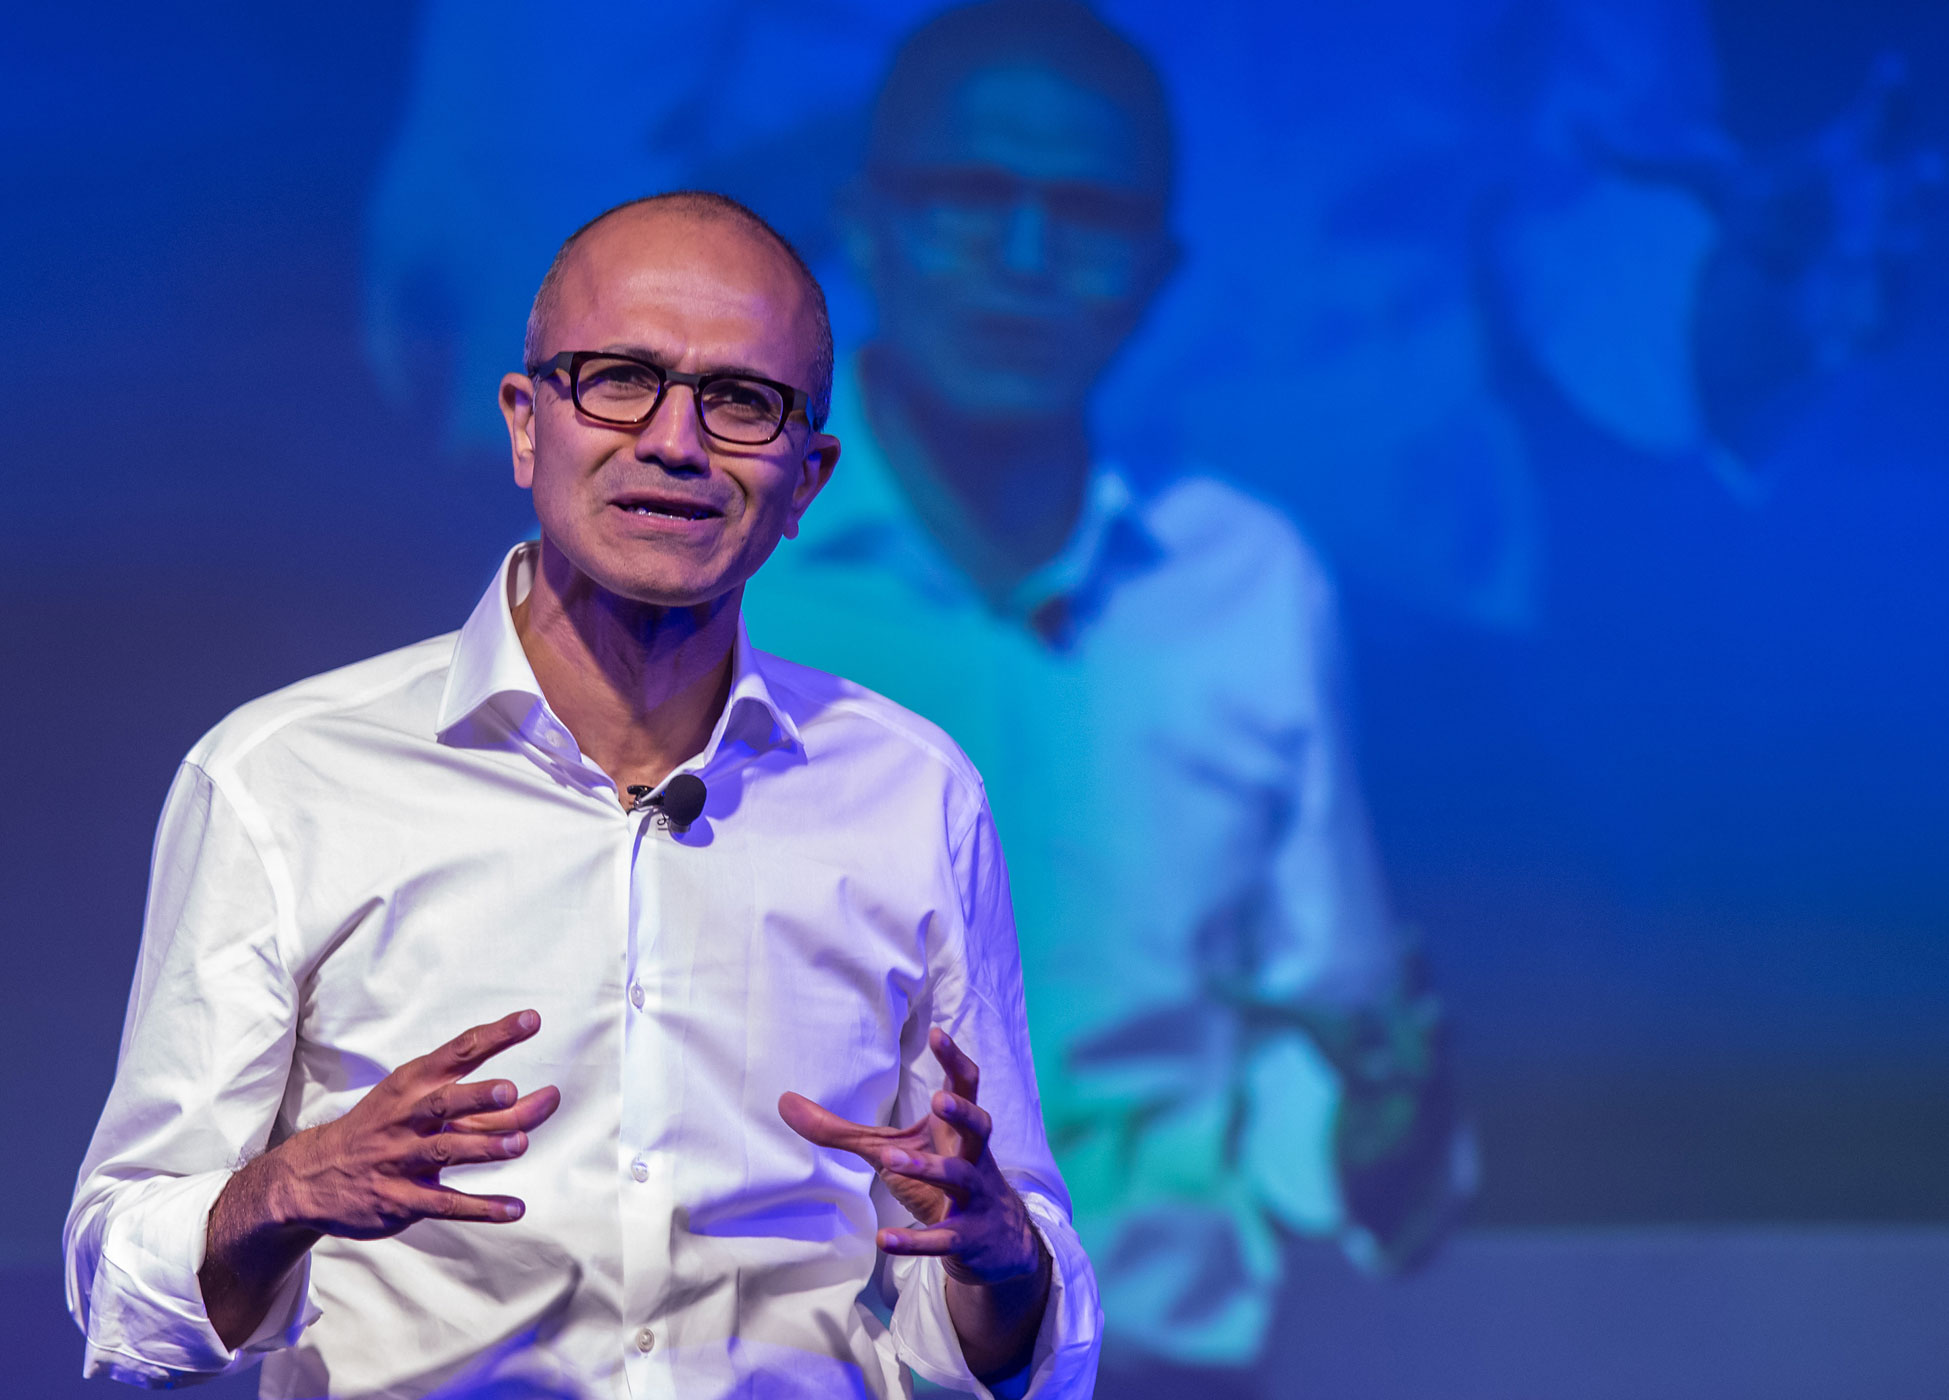 Satya Nadella, chief executive officer of Microsoft Corp., speaks to students during the Microsoft Talent India conference in New Delhi, India, on Tuesday, Sept. 30, 2014.